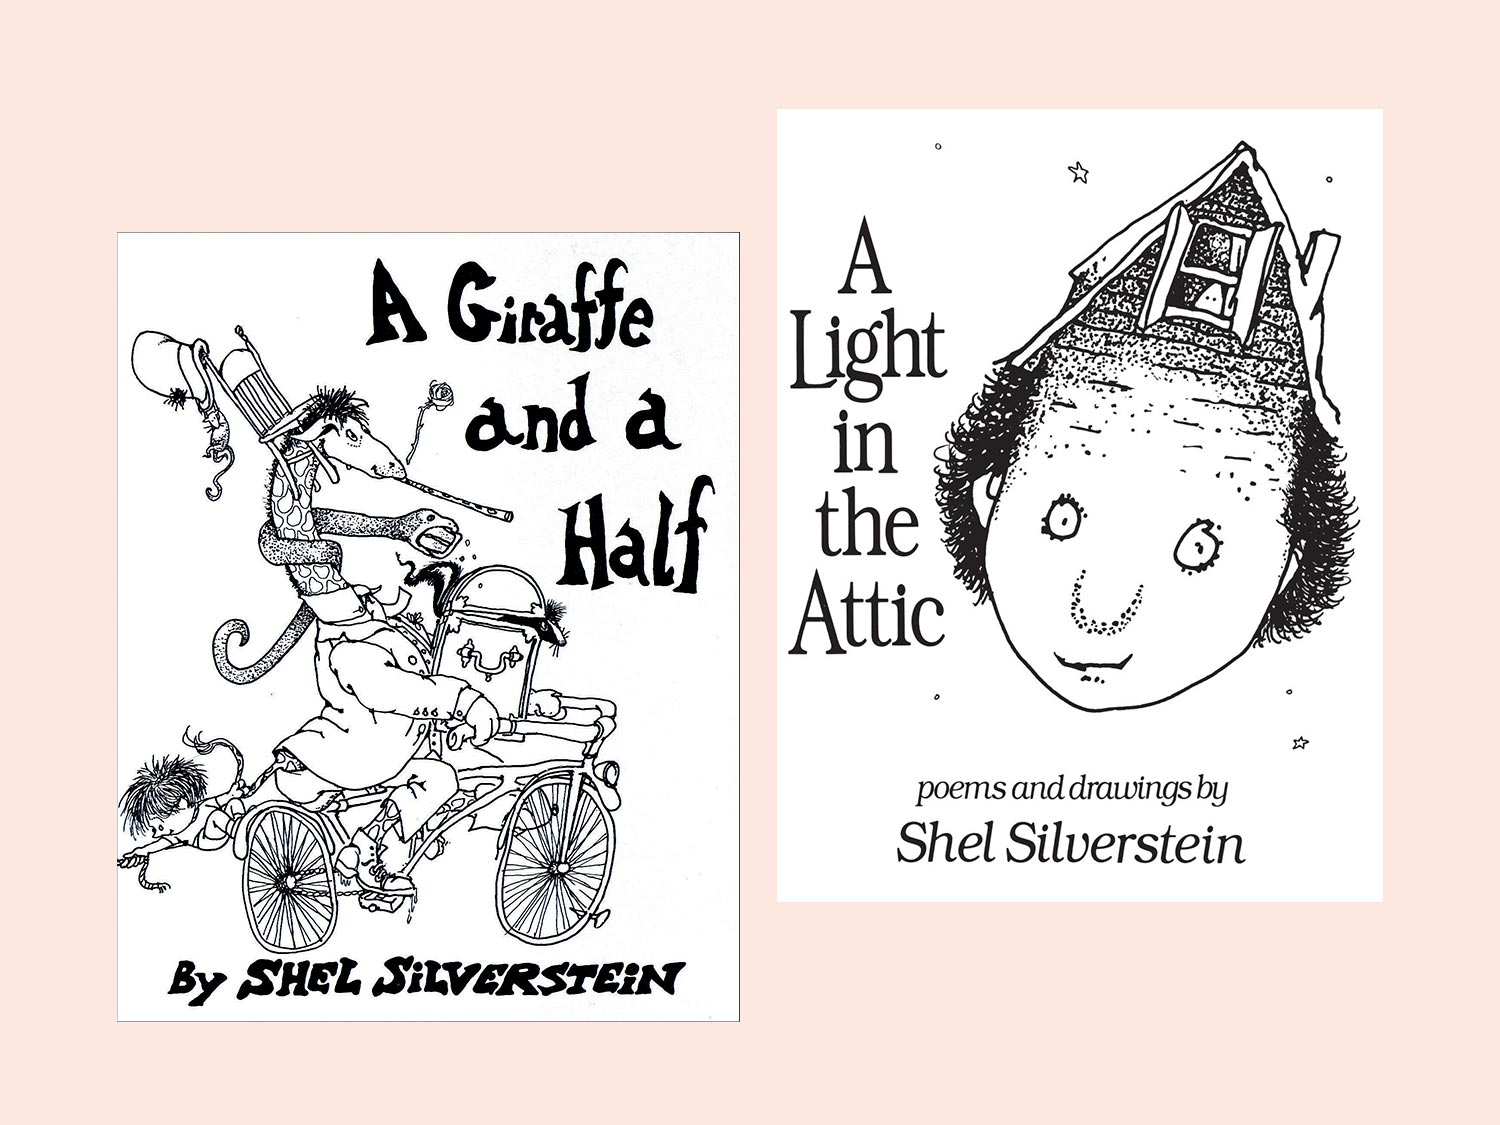 Shel Silverstein And His Family: The Wonderful World Of Shel Silverstein